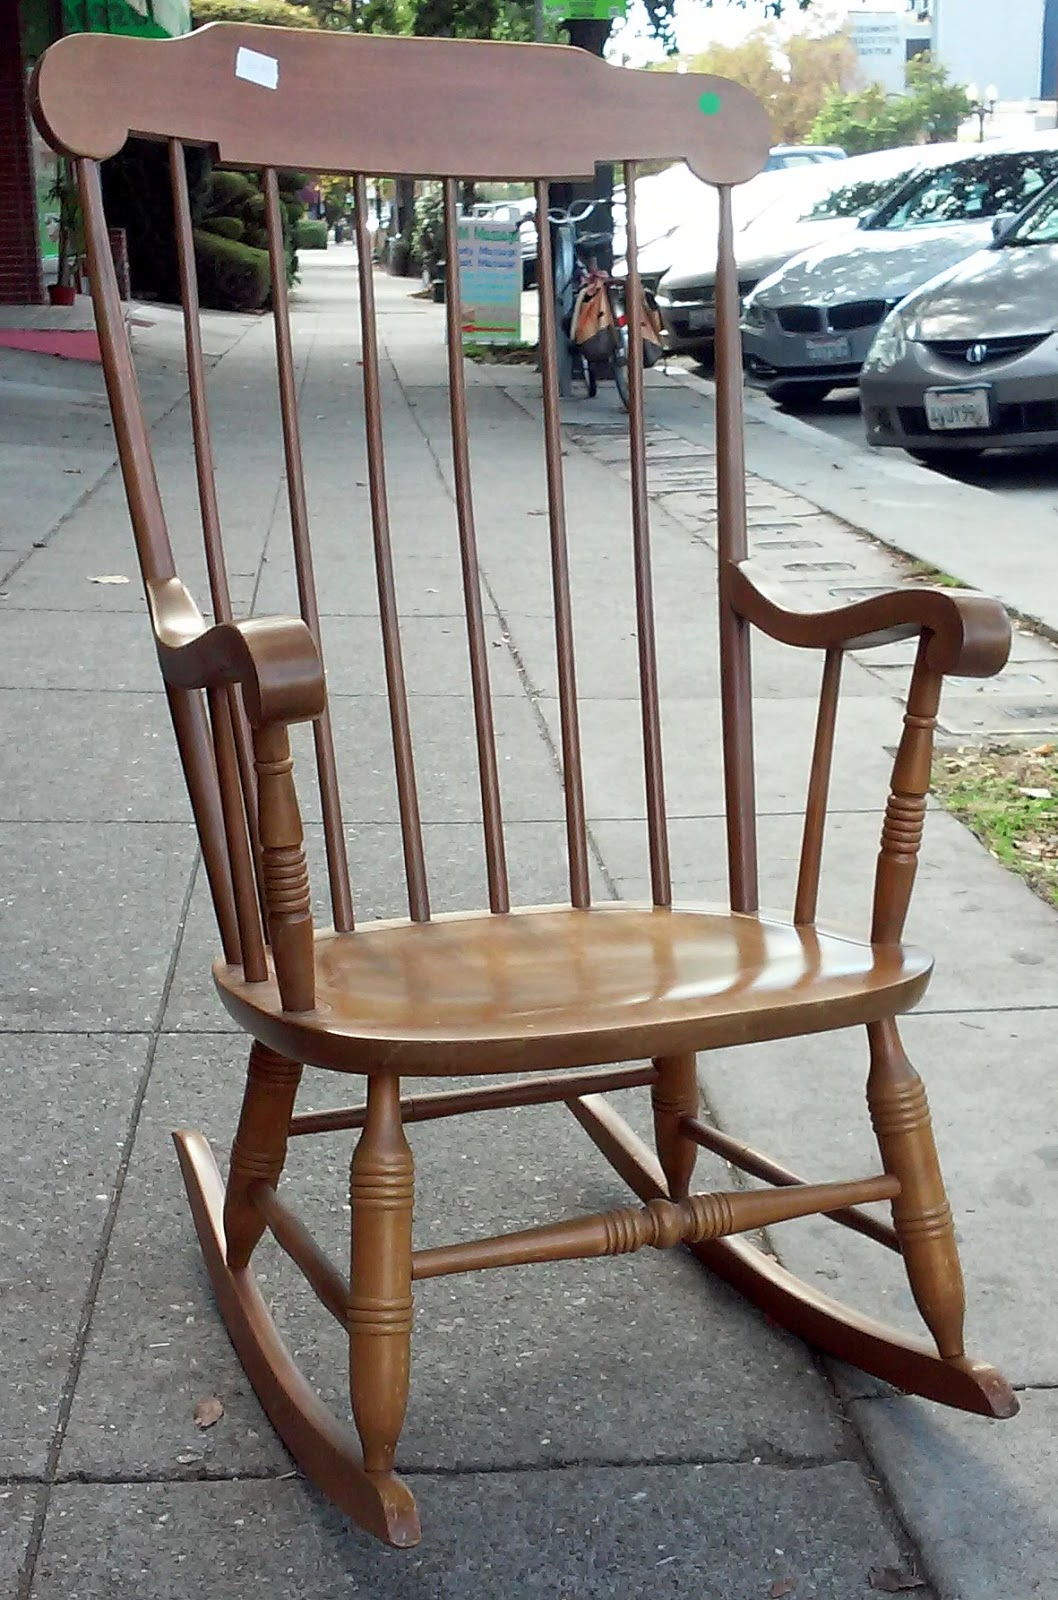 Rocking Chair Clearance Antique White Dining Uhuru Furniture And Collectibles Sold 8087